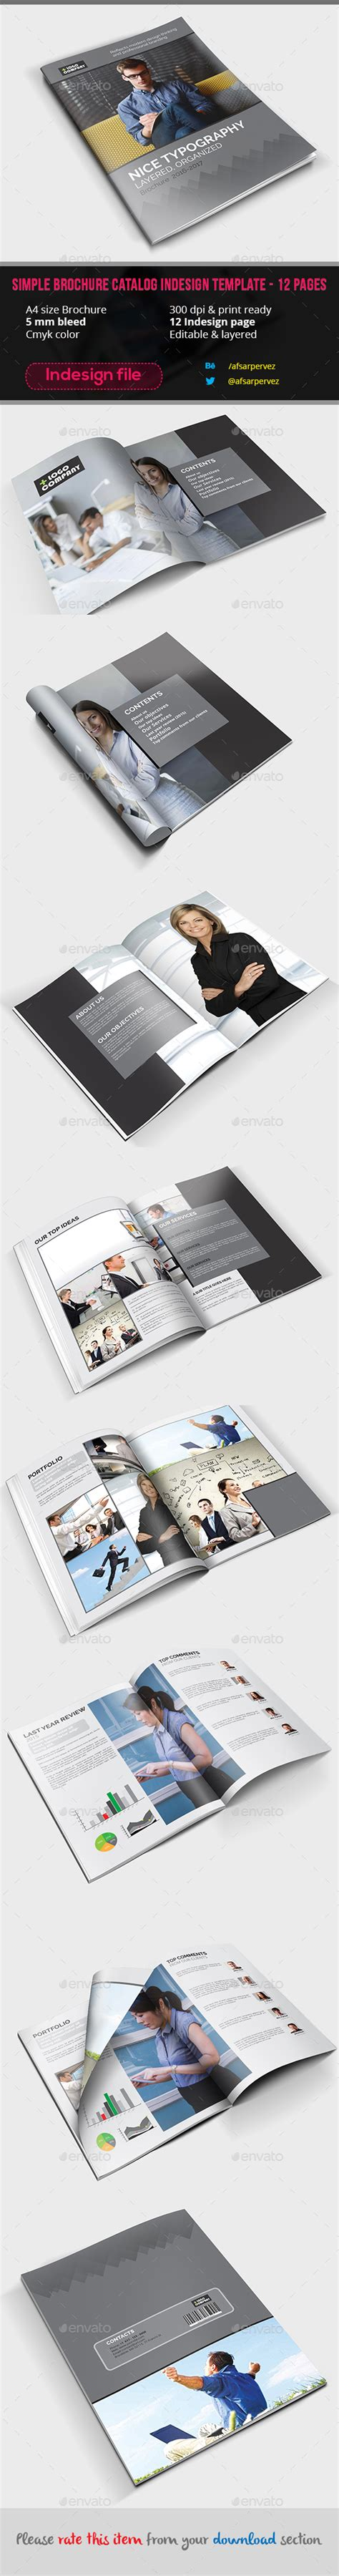 simple brochure catalog indesign template 12 pages by